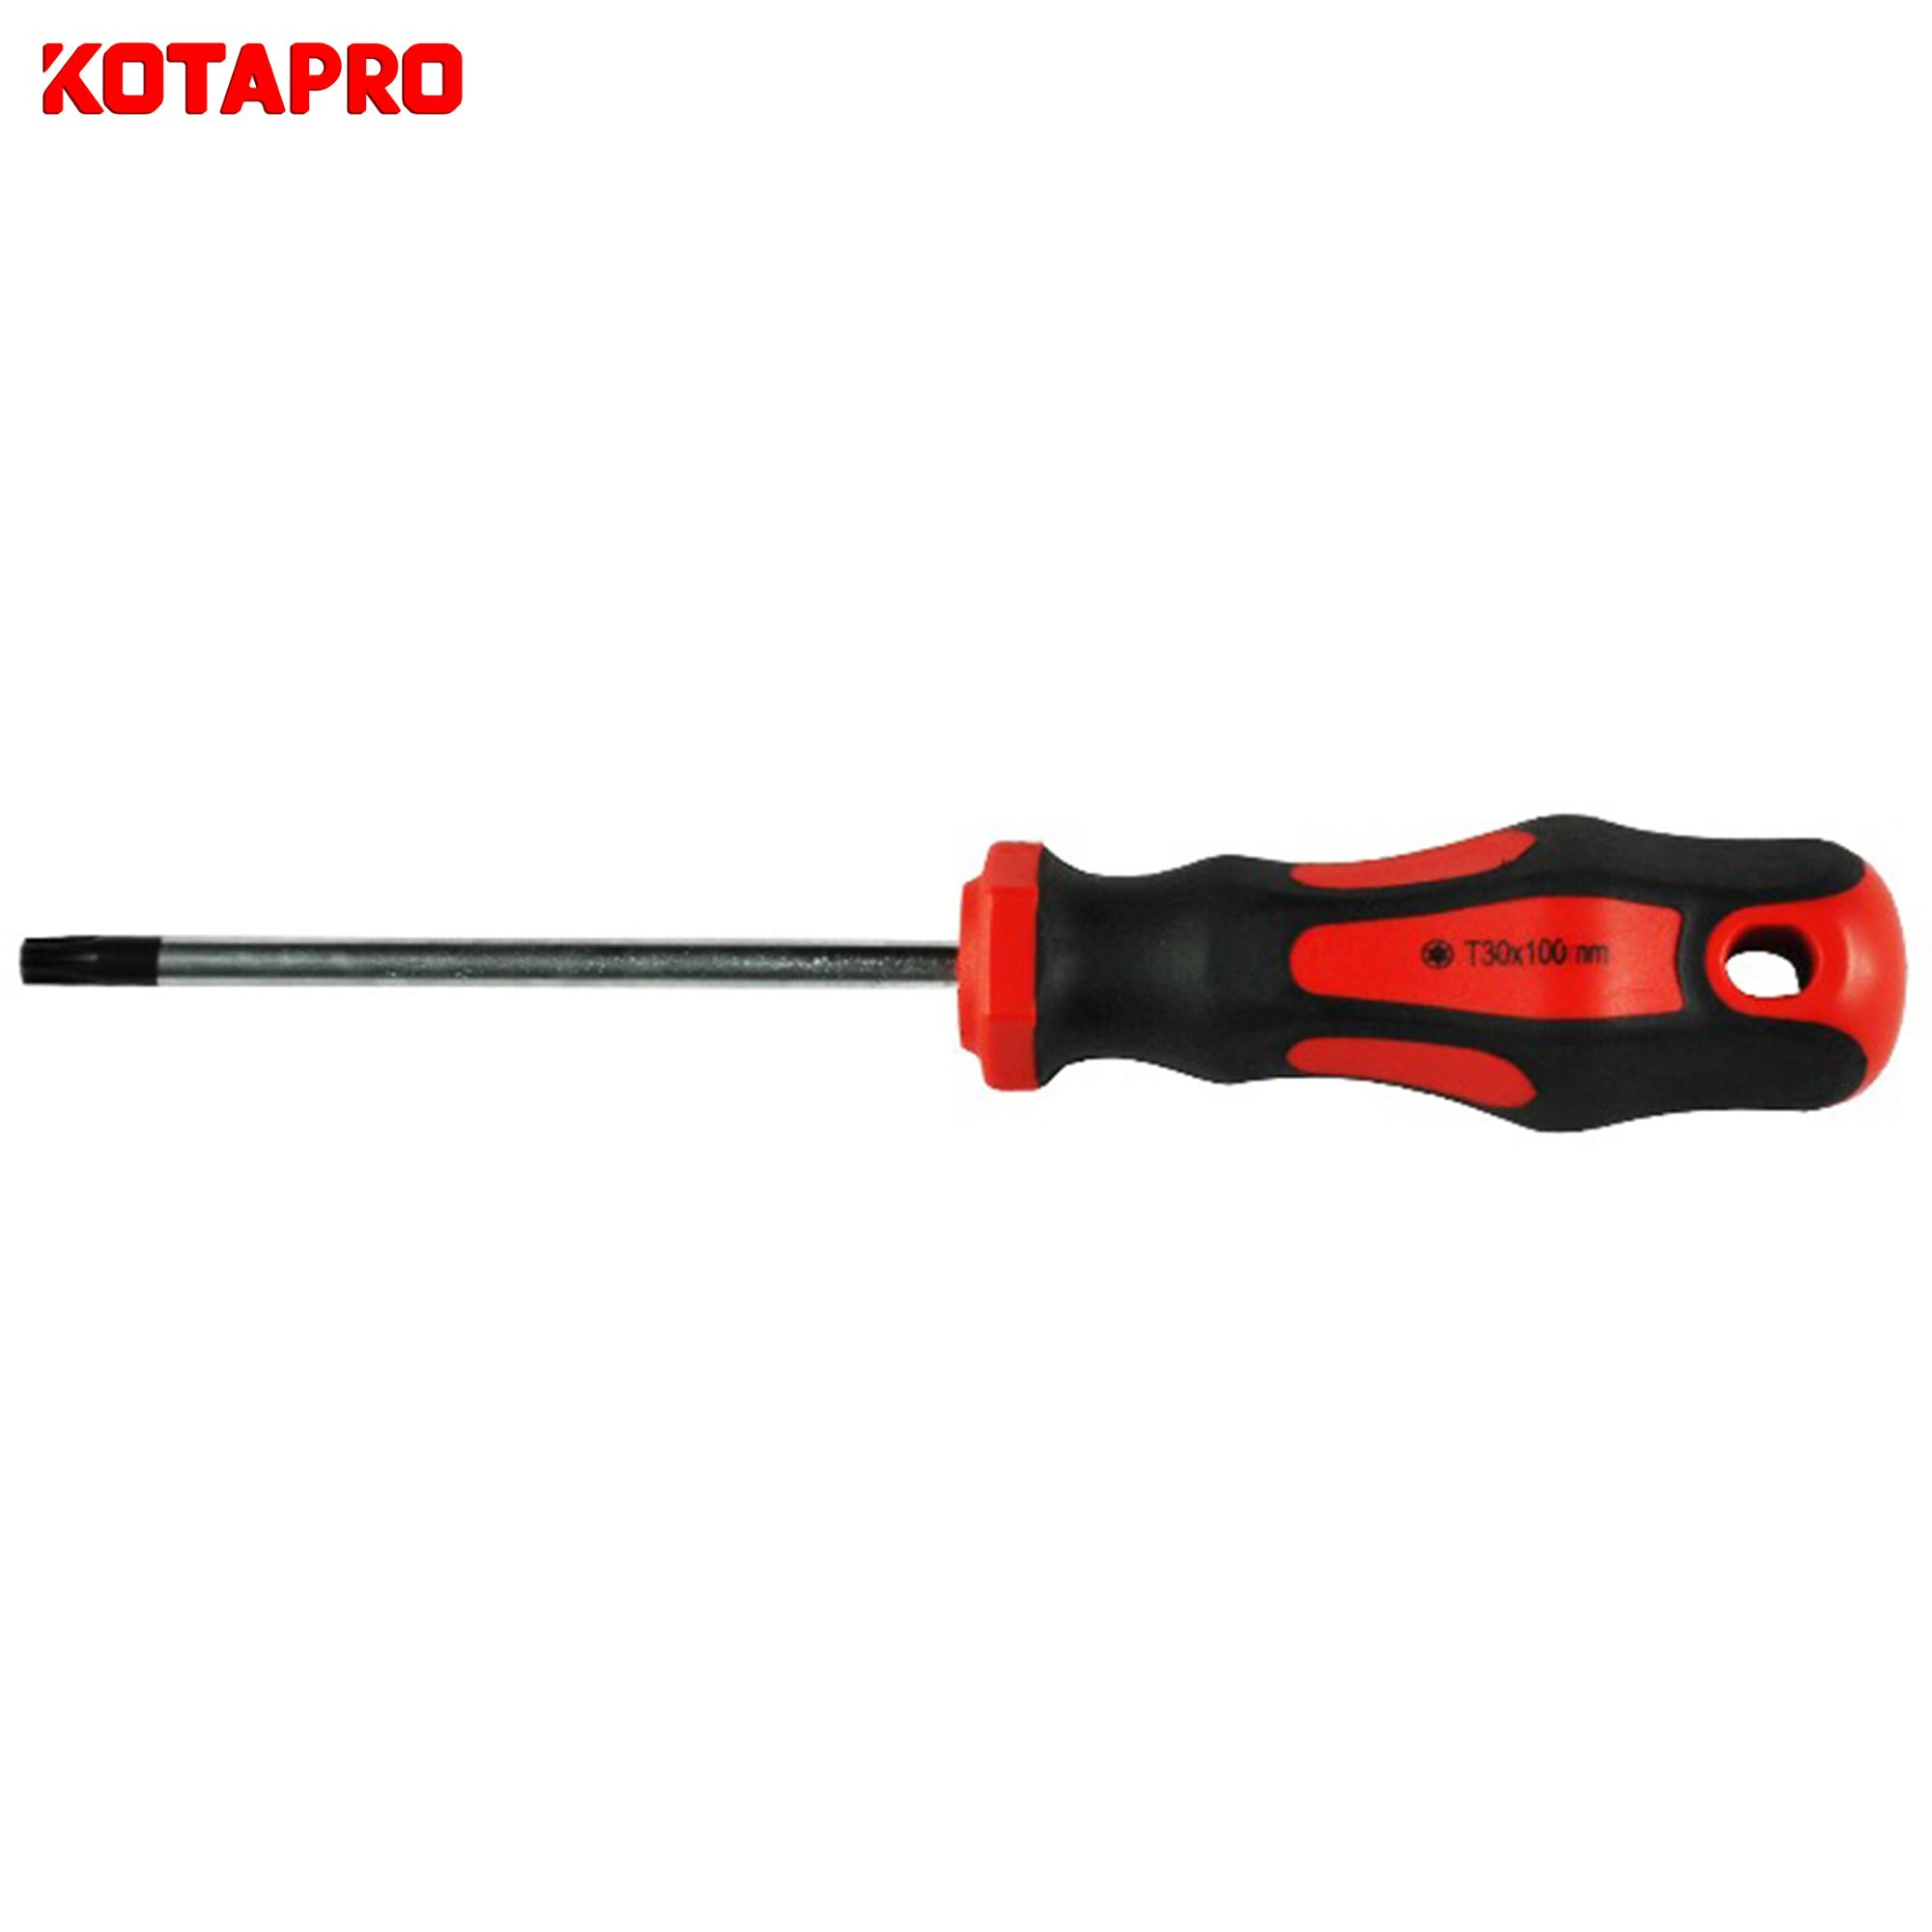 Torx T4 Safety T1 T2 T3 T4 Torx Screwdriver With Soft Handle Buy Screwdriver Torx Screwdriver T1 T2 T3 T4 Torx Screwdriver Product On Alibaba